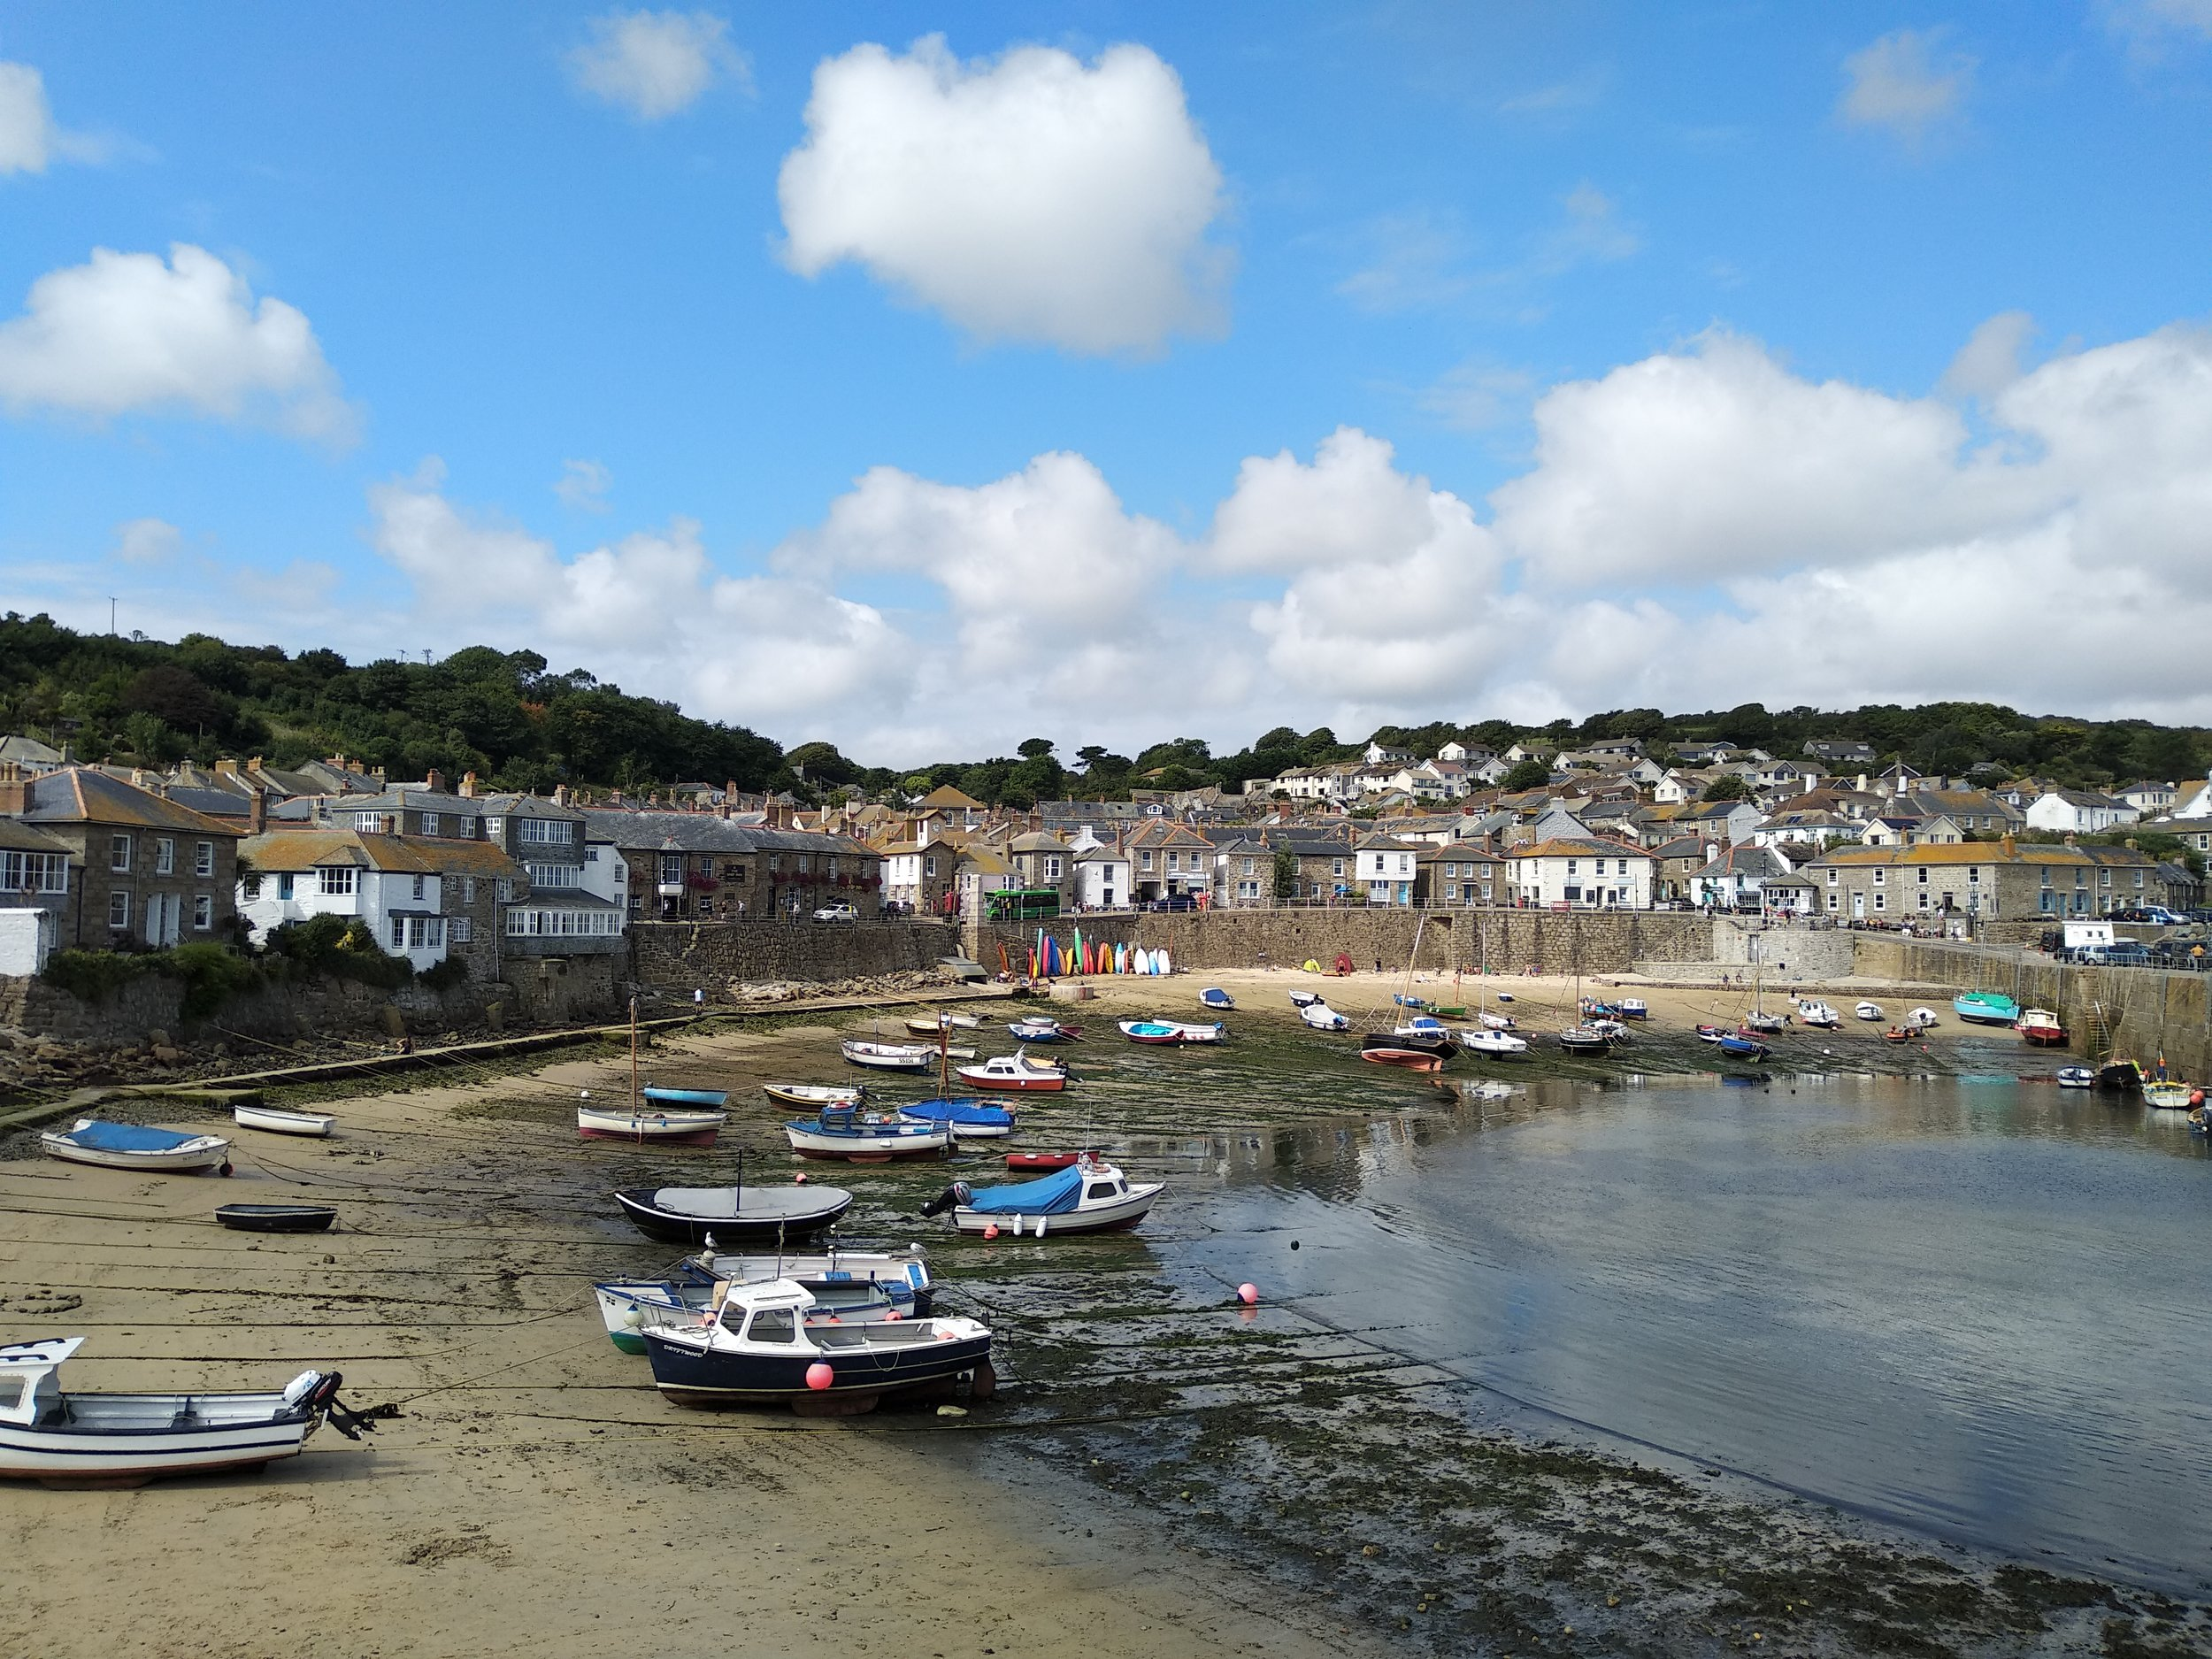 """The very picturesque town of Mousehole, which I decided to pronounce """"Mouse-hole"""" much to Kate's annoyance throughout the trip."""